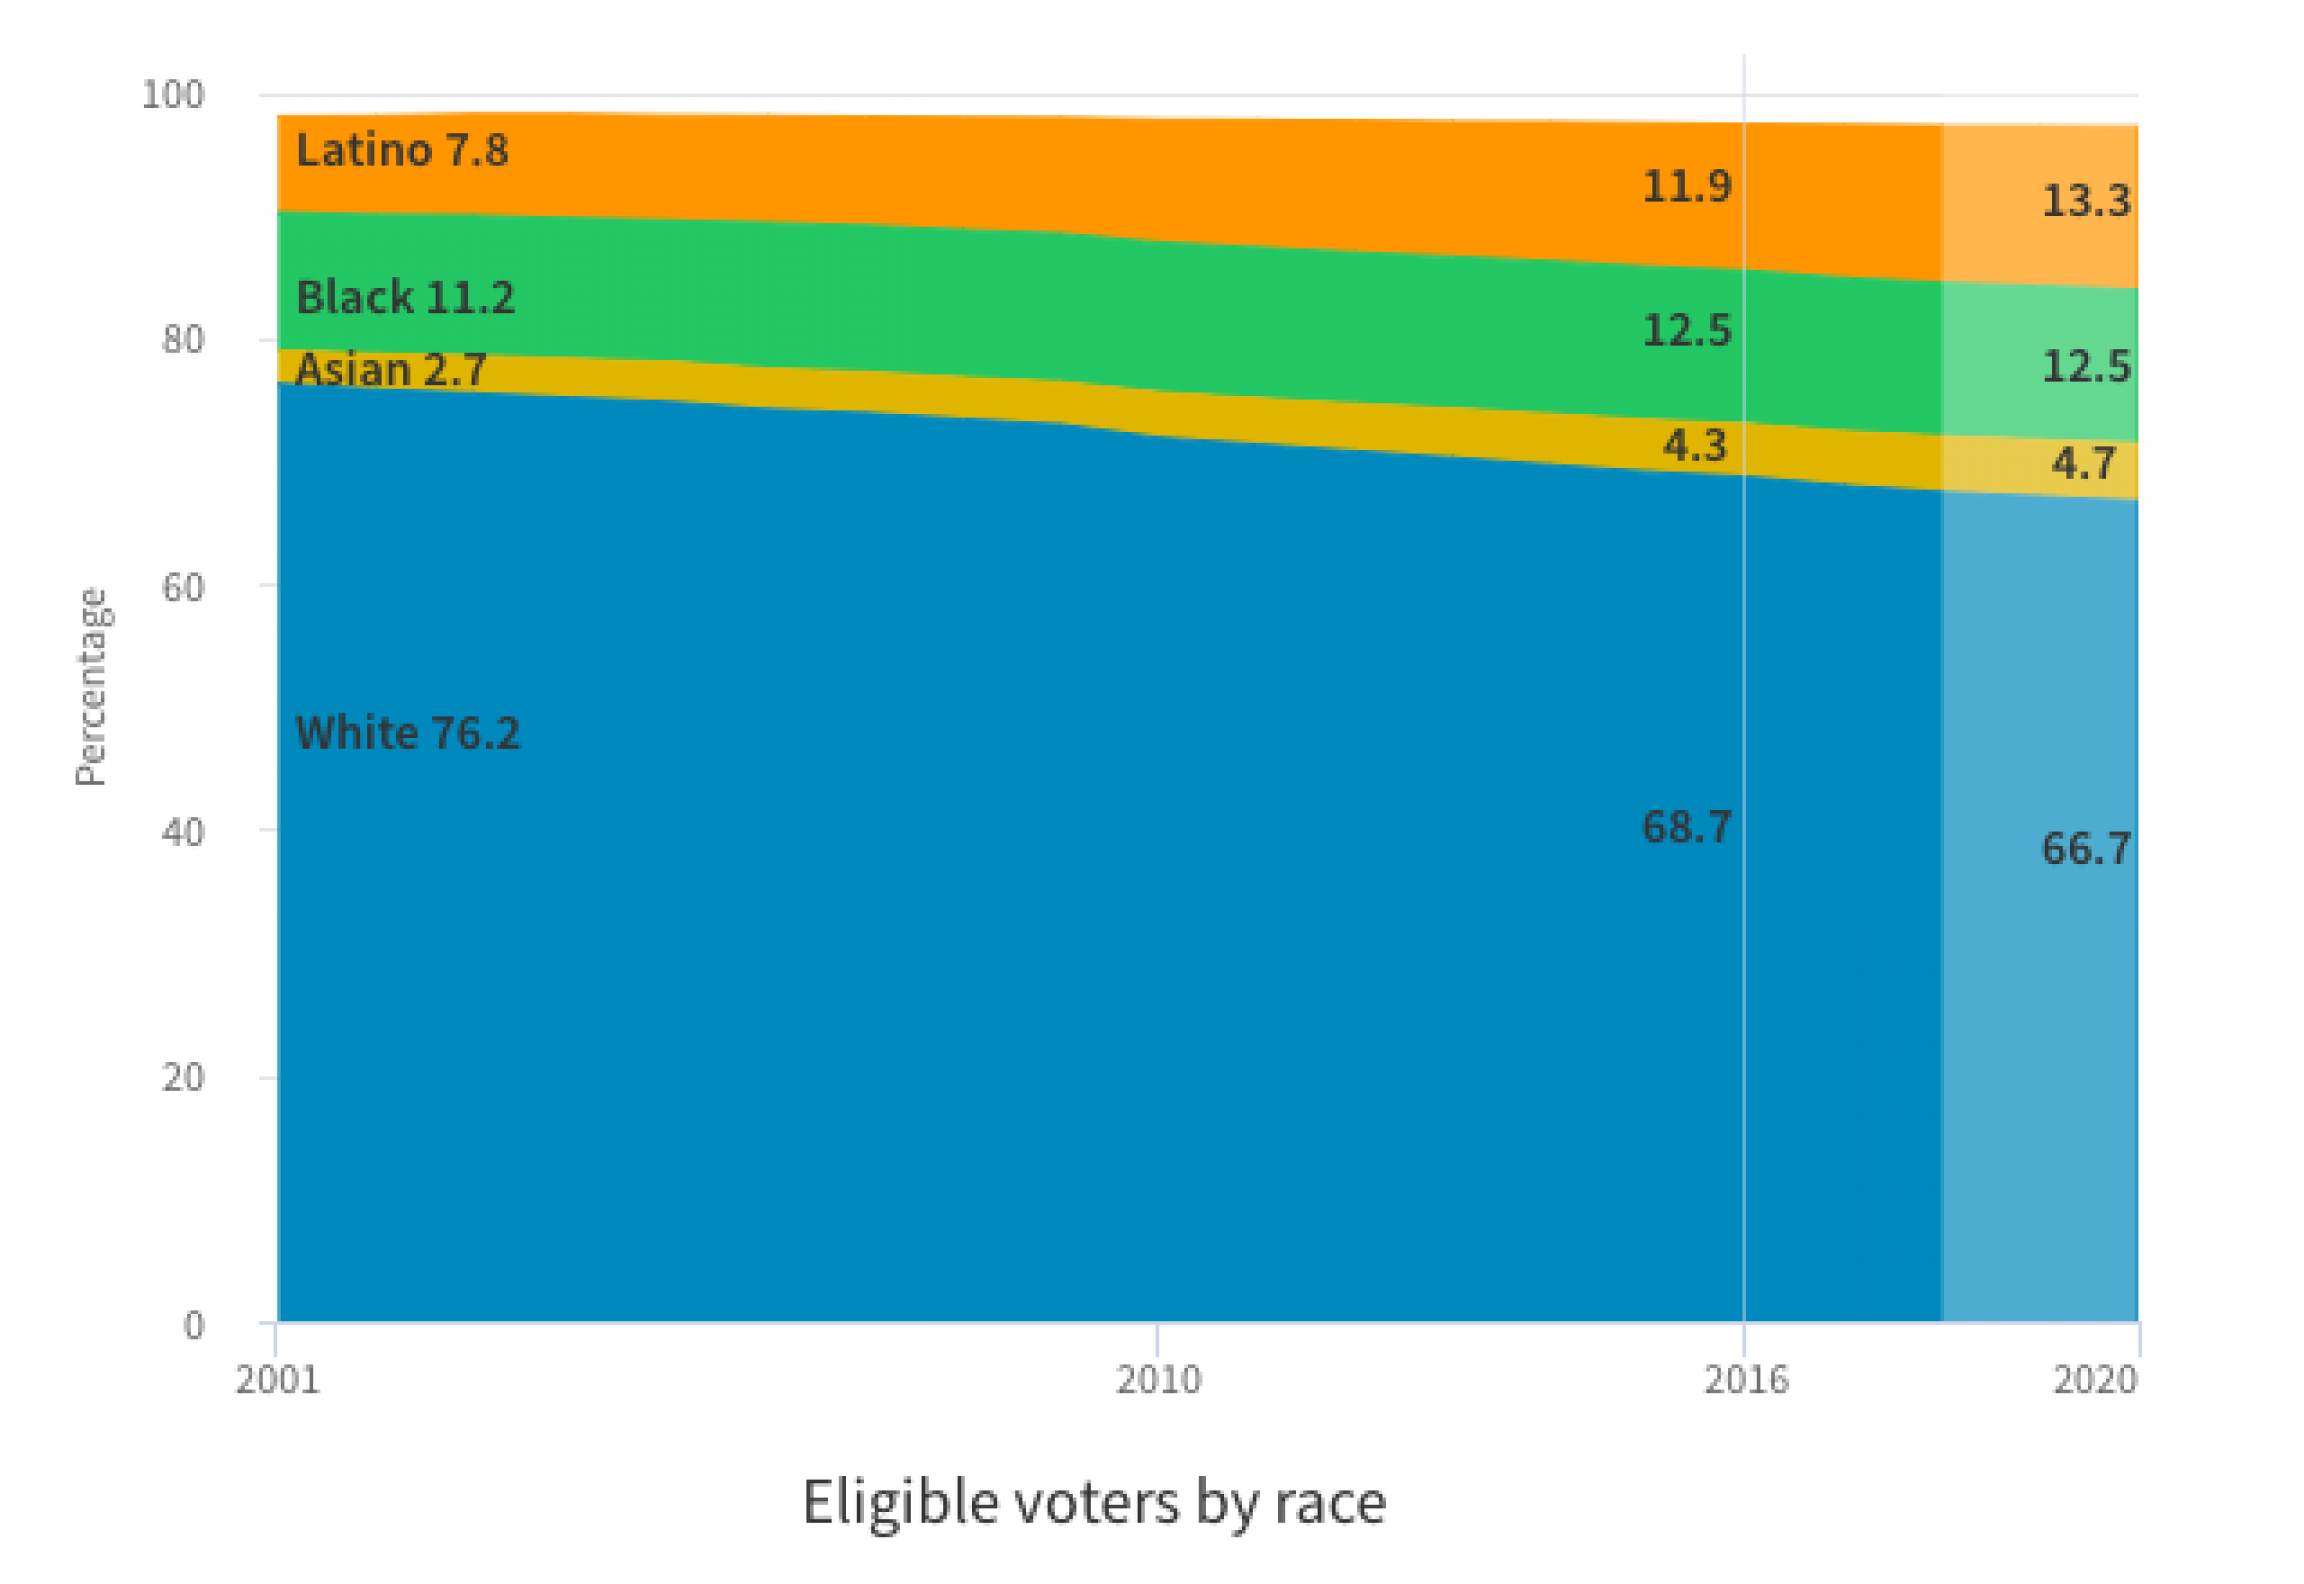 Eligible voters by race